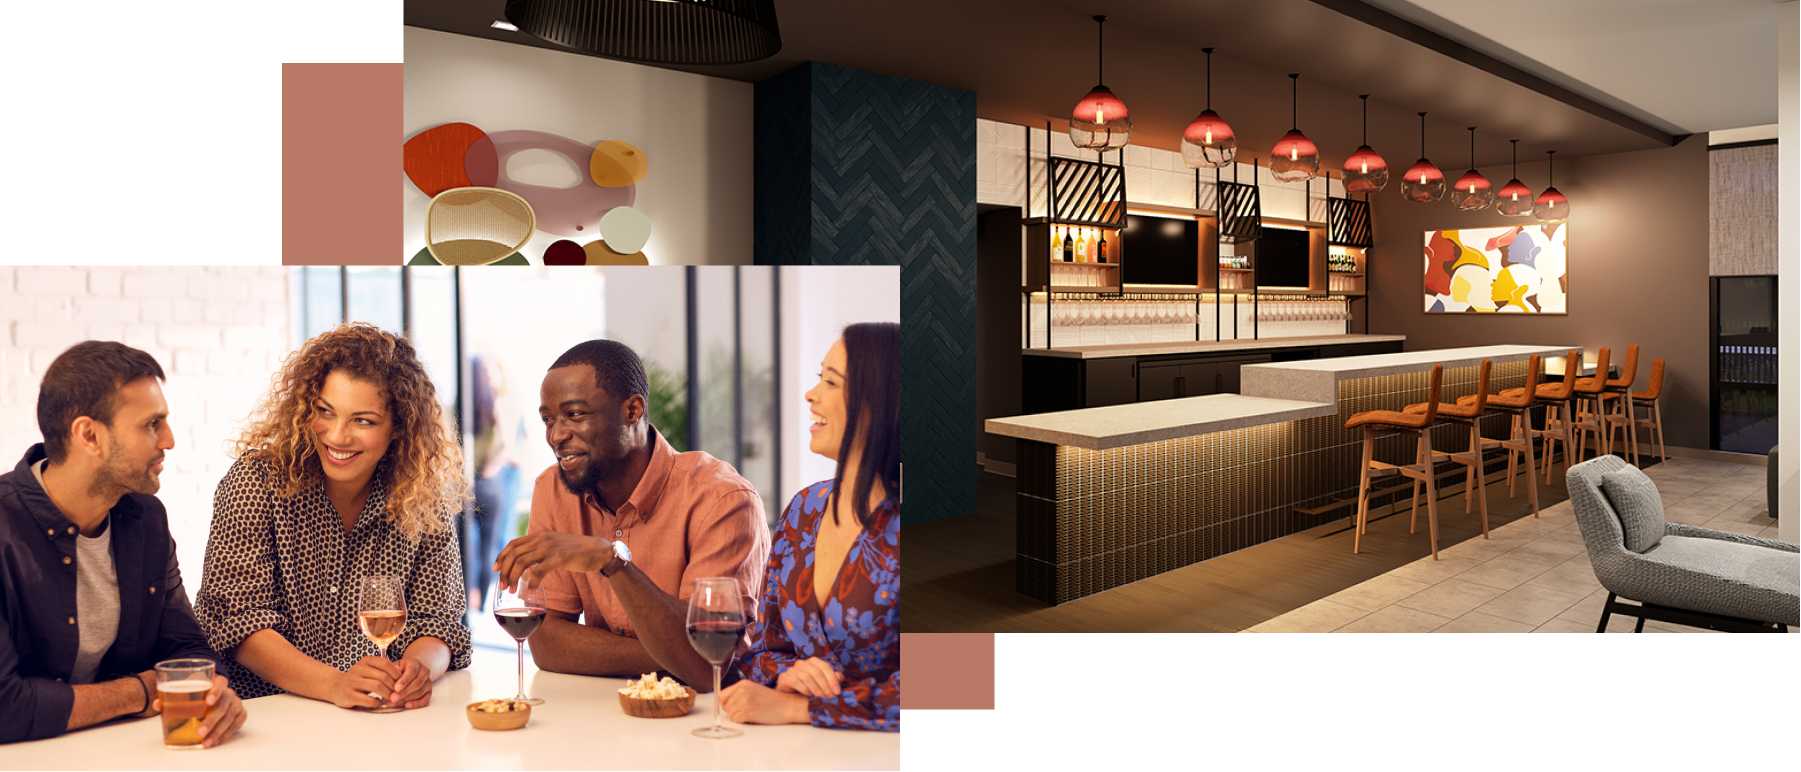 A mosaic of images showing the hotel dining counter as well as a group of travellers enjoying a drink together.